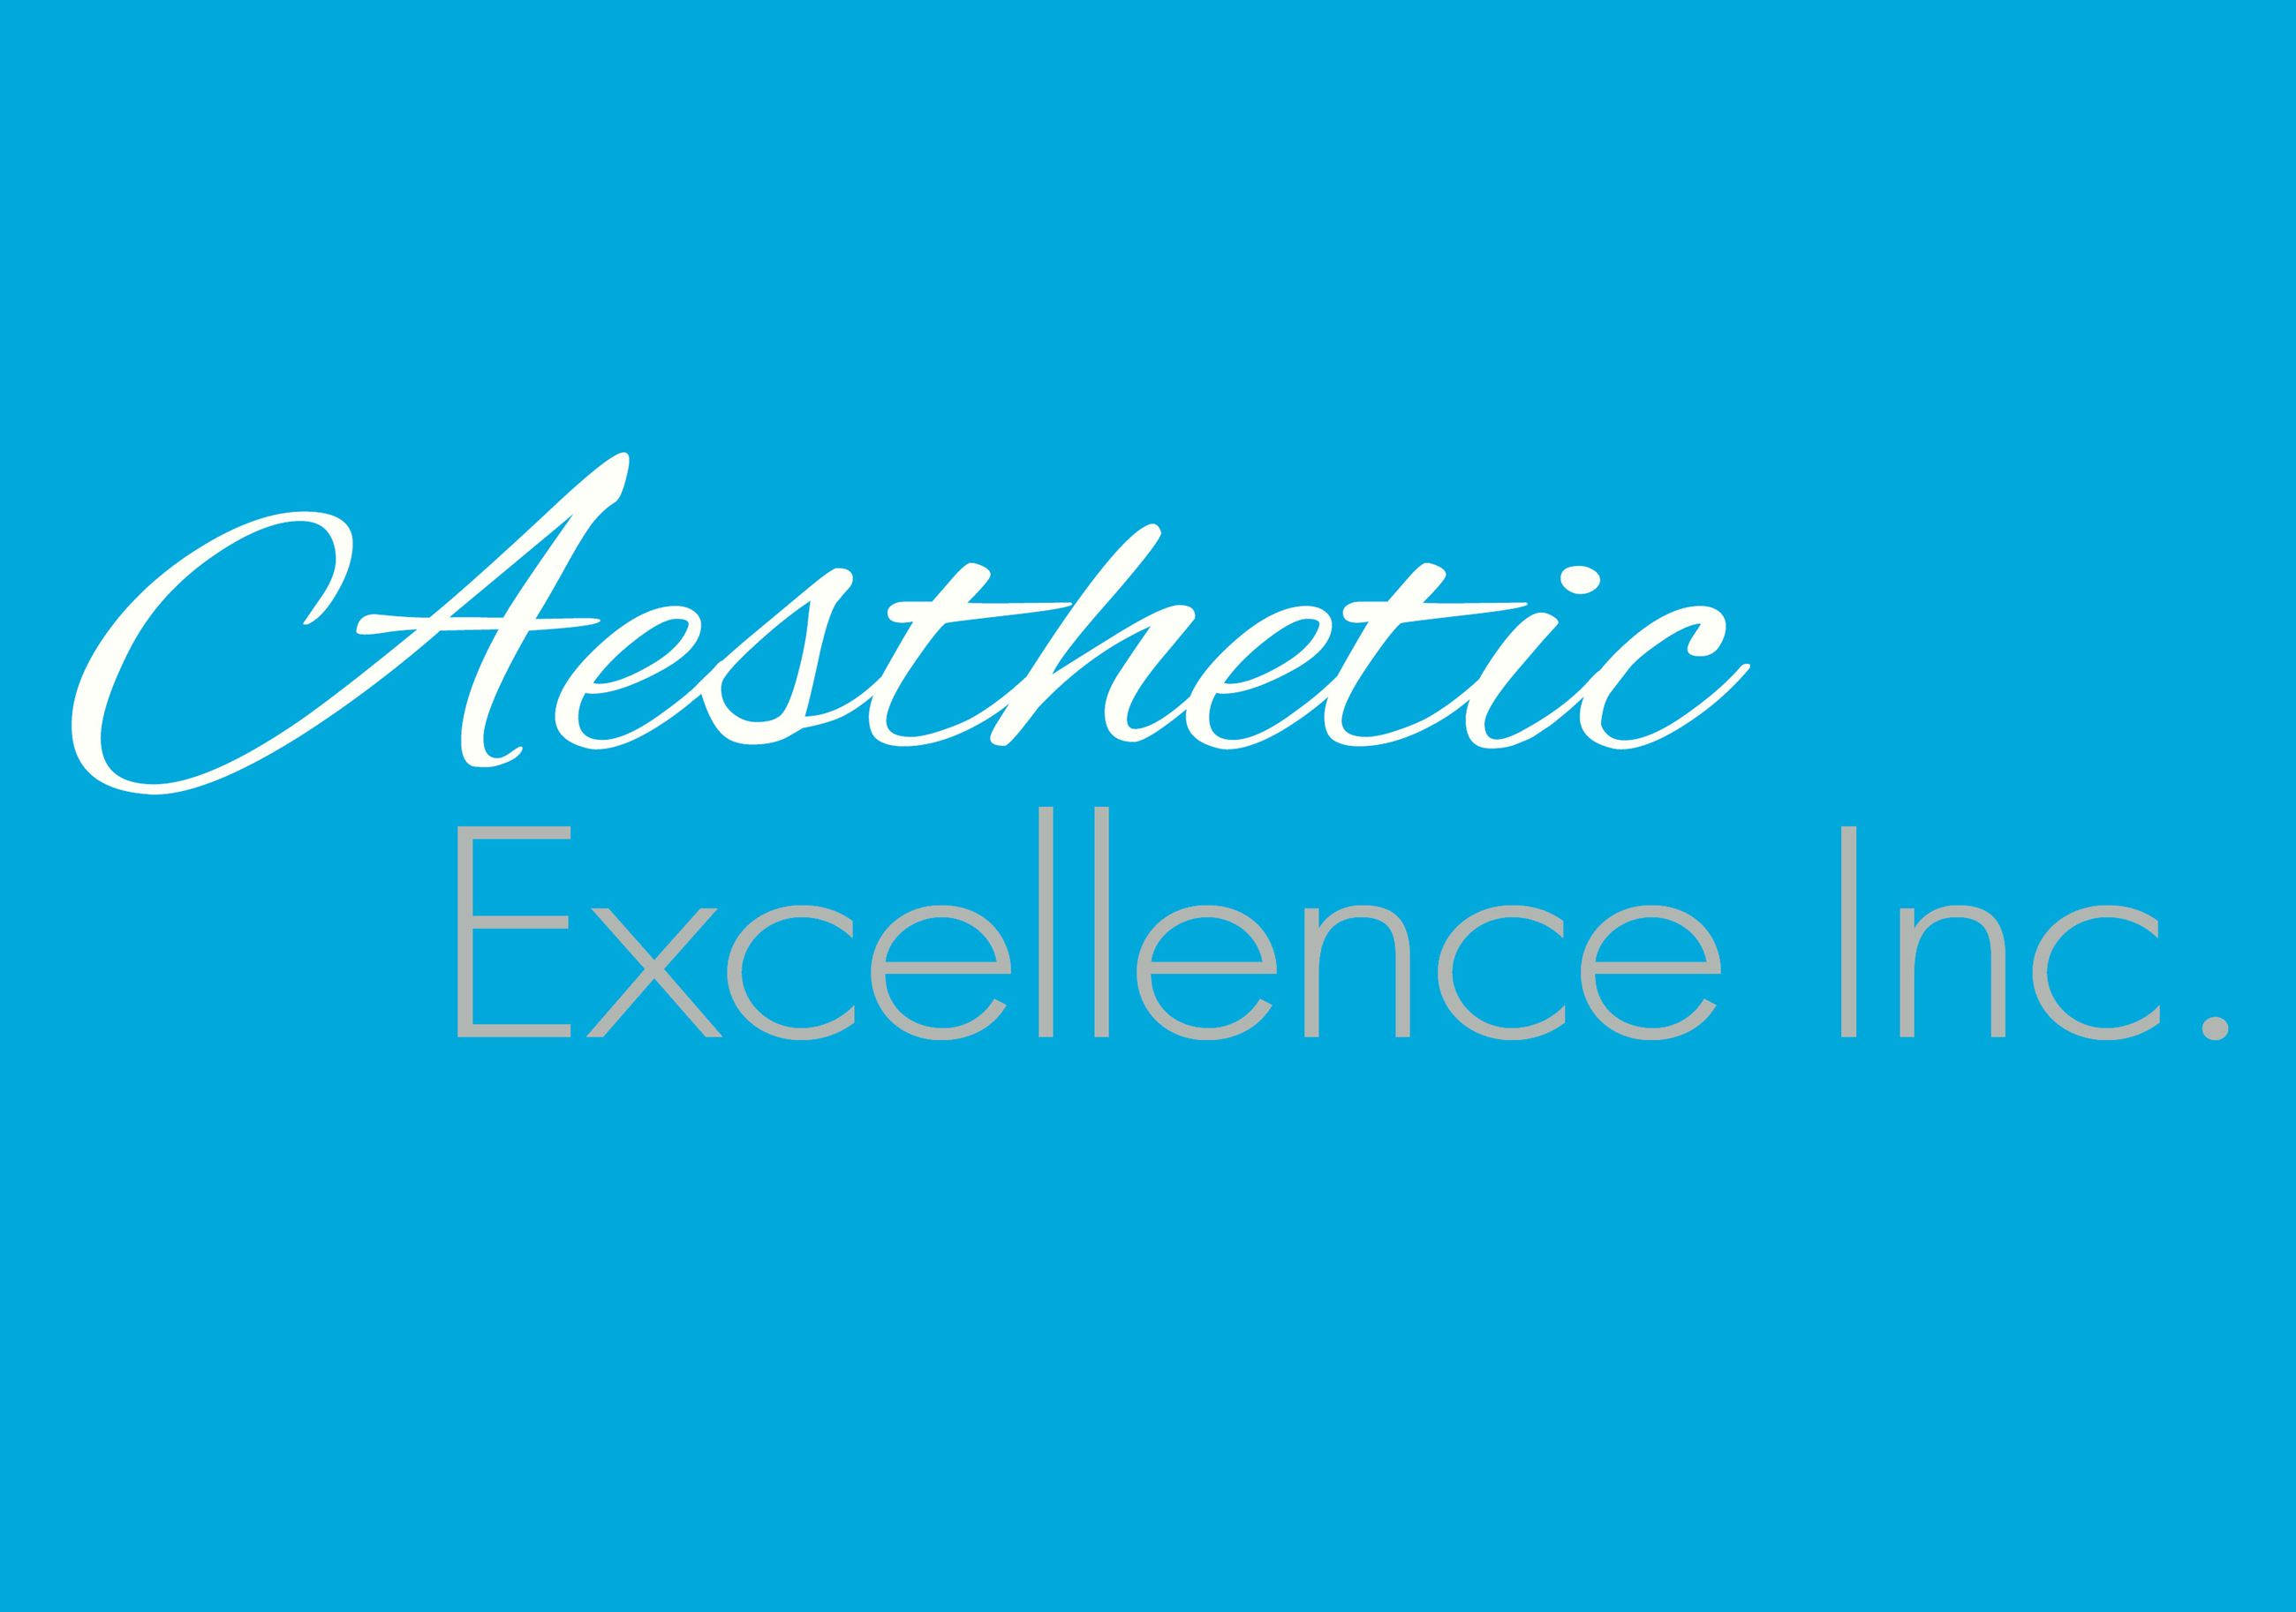 Aesthetic Excellence Inc